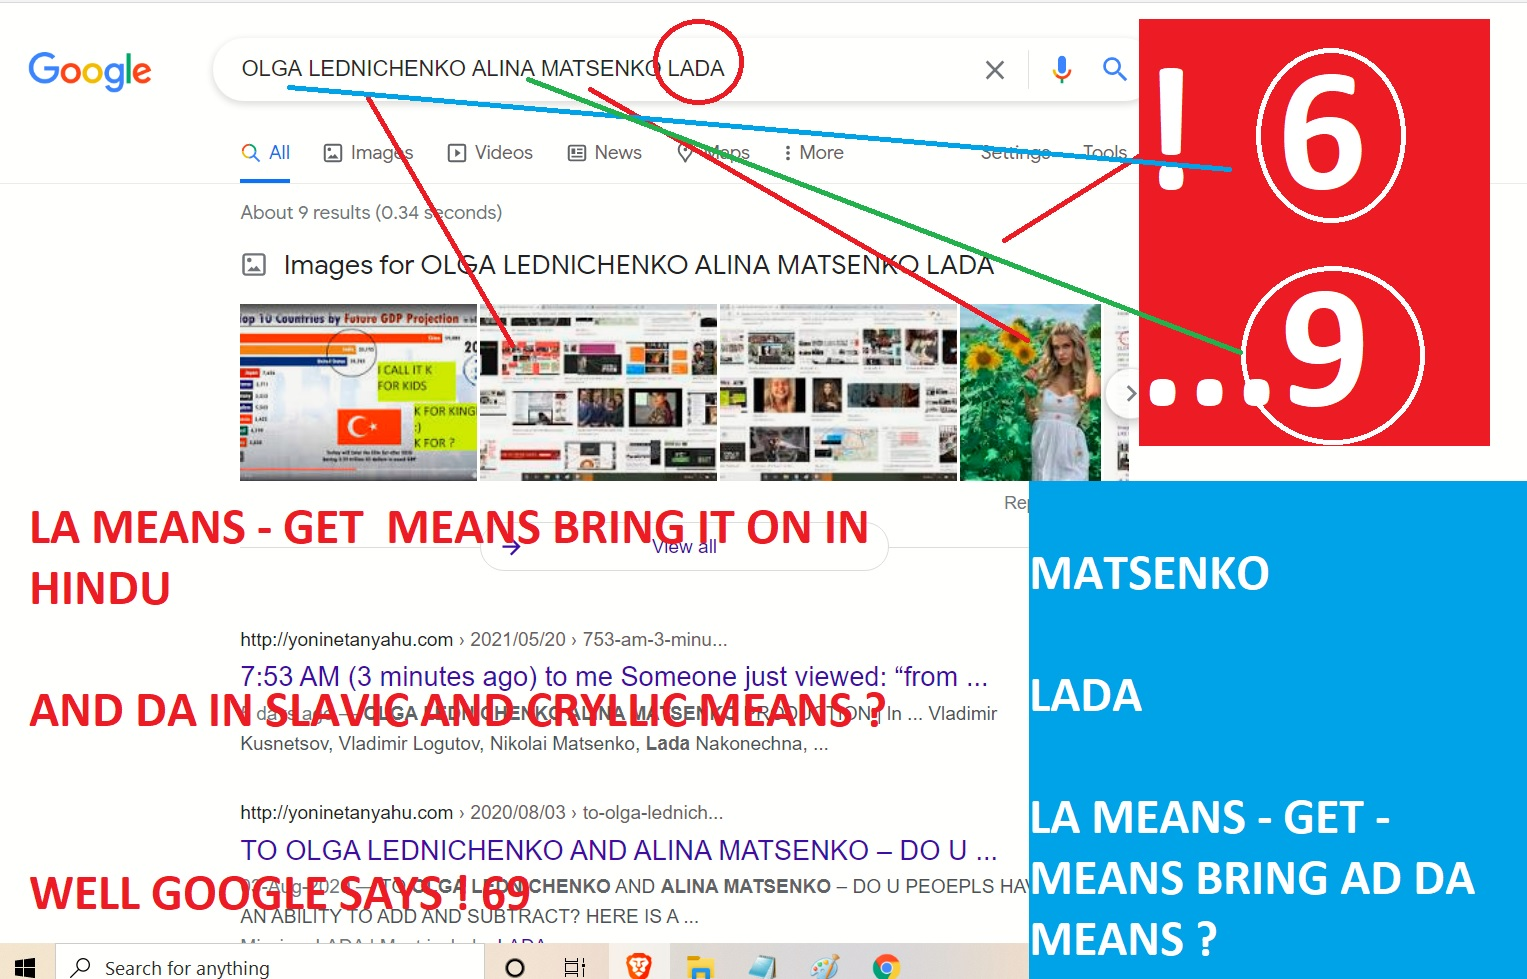 LEDNICHENKO MATSENKO LADA - LA IN HINDU MENAS BRING IN ON LIKE HET IT AND DA MENAS WHAT IN SKAVCI AND I CRYLLIC - GOOGLE SAYS FACT O RIAL 6 AND 9